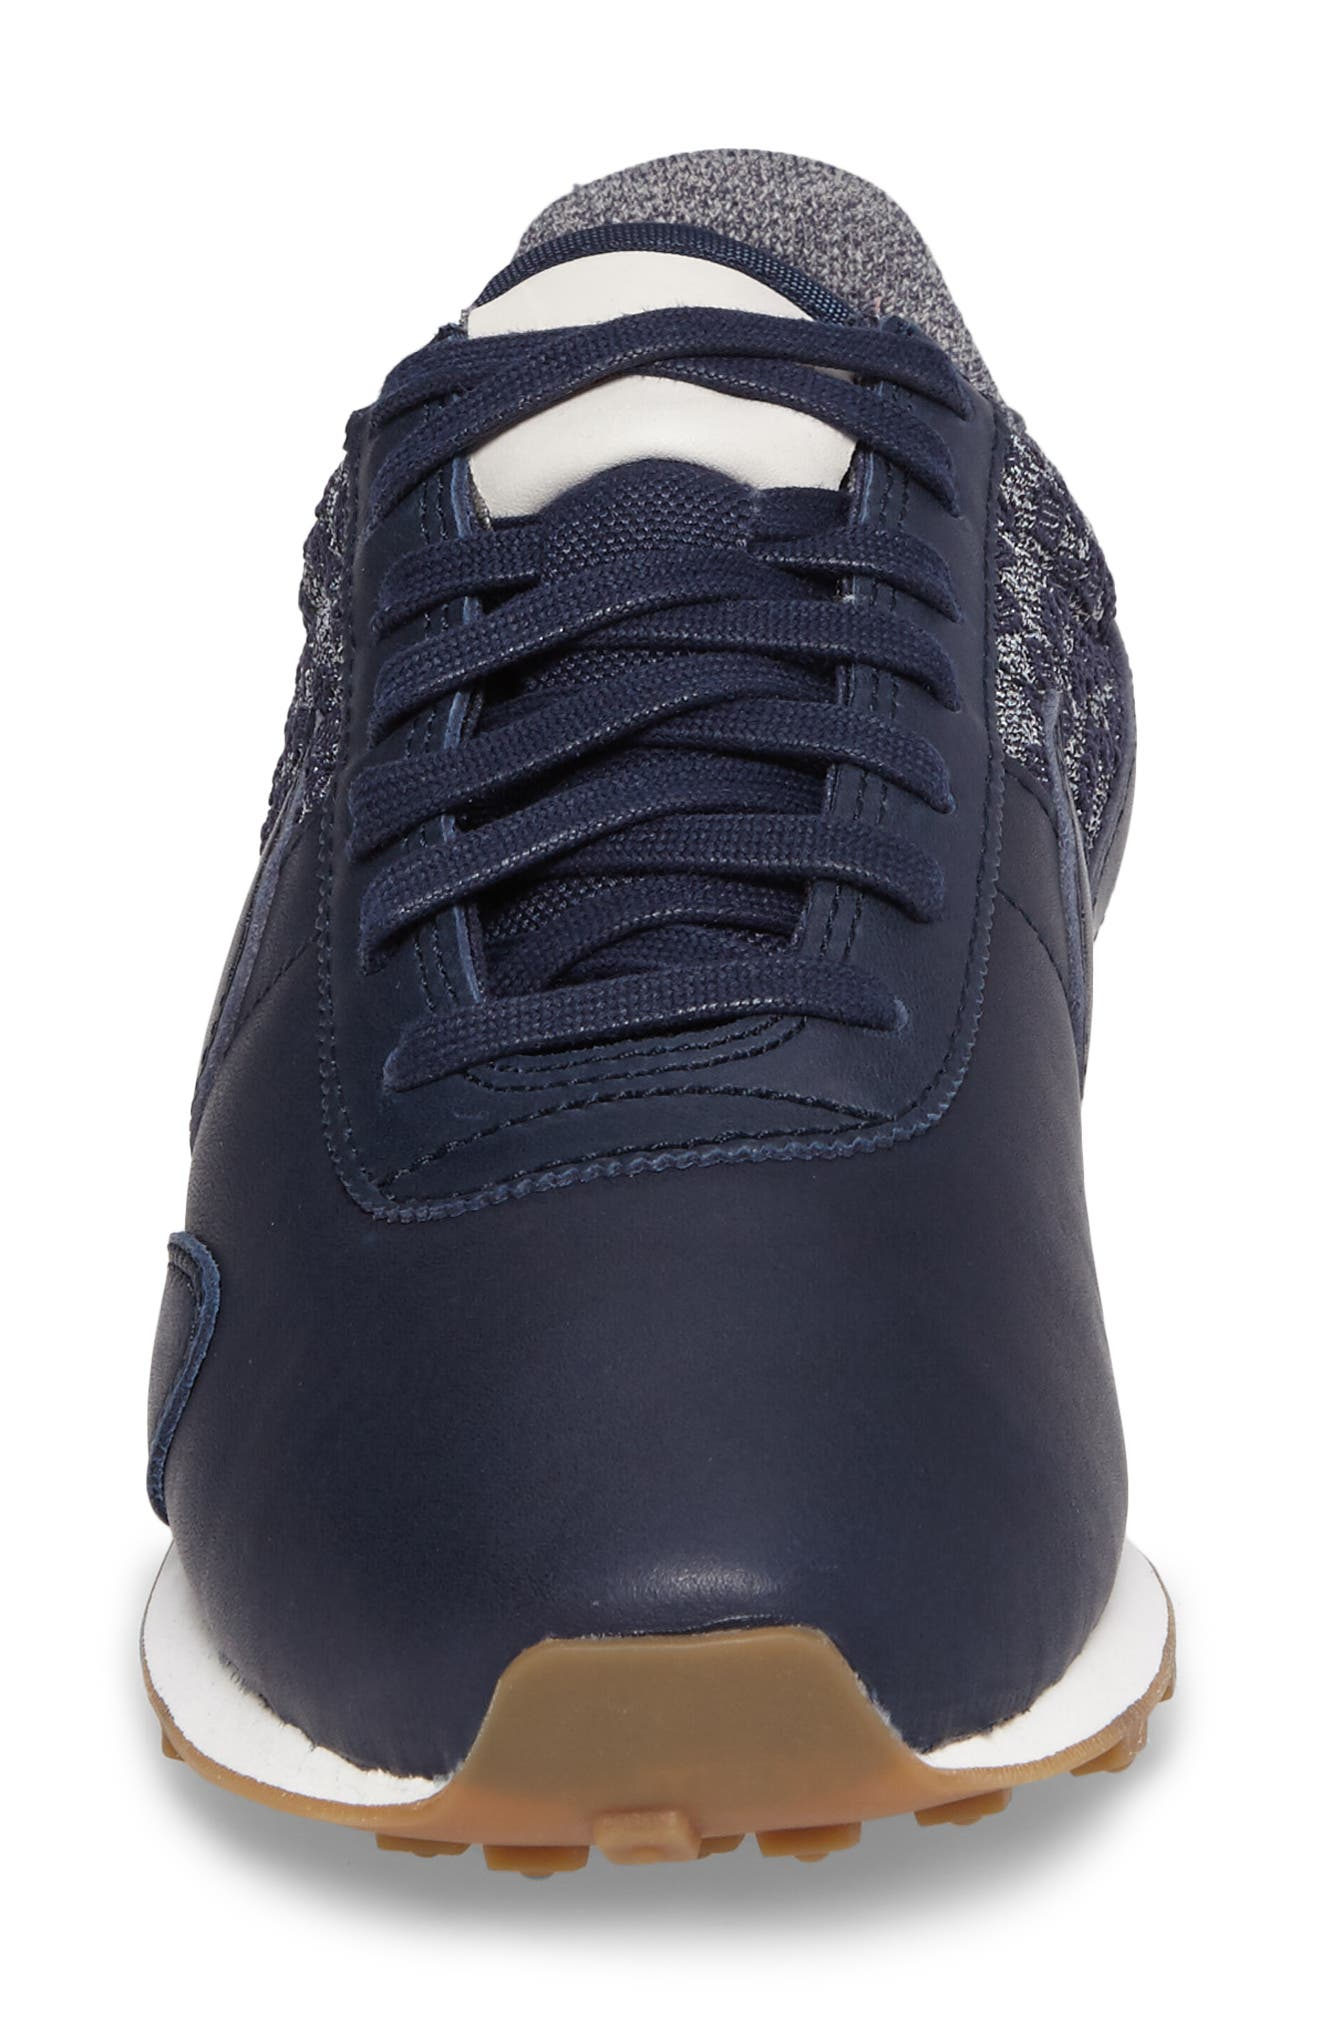 Pre Montreal Racer Vintage Sneaker,                             Alternate thumbnail 4, color,                             Obsidian/ Sail/ Gum Brown